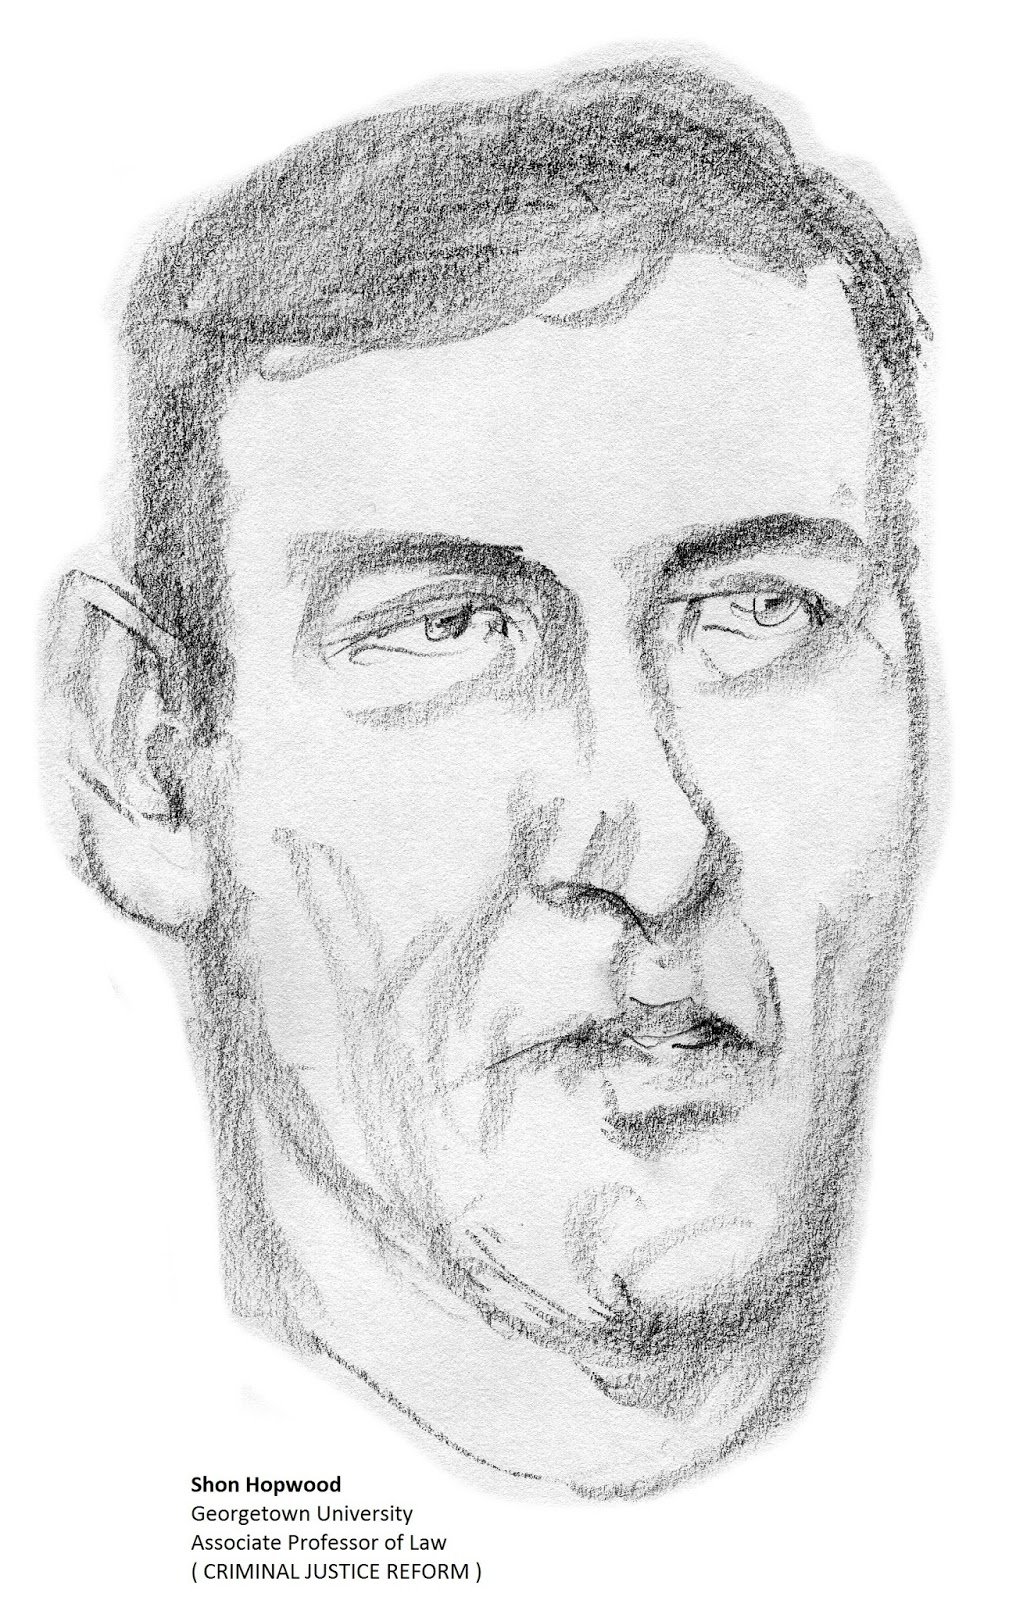 daily drawings: Shon Hopwood